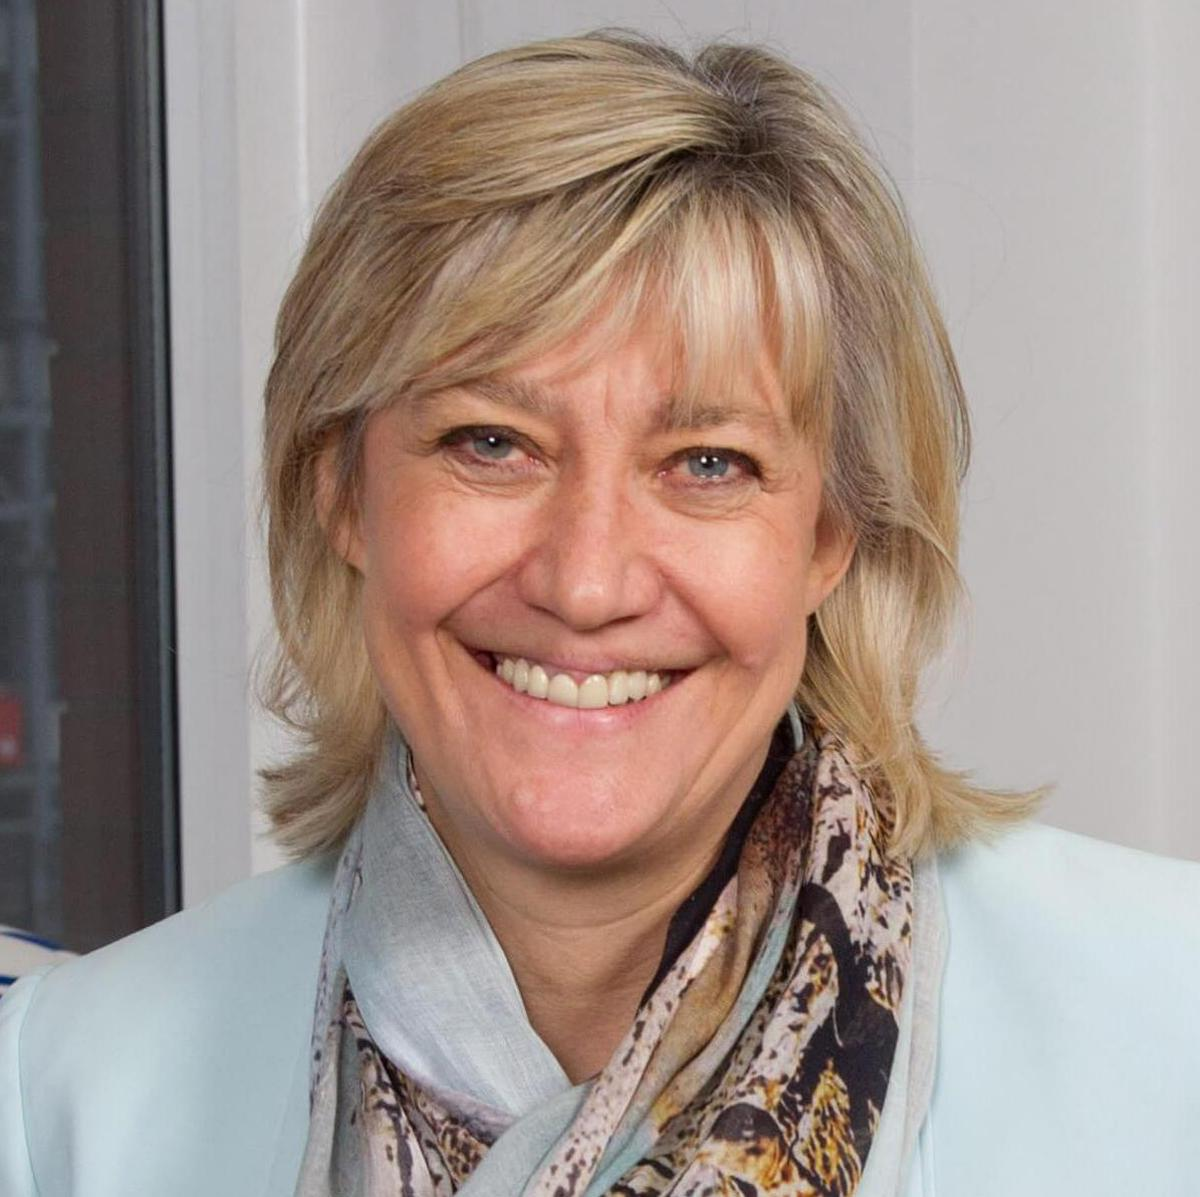 Jevans becomes the first woman to lead the EFL